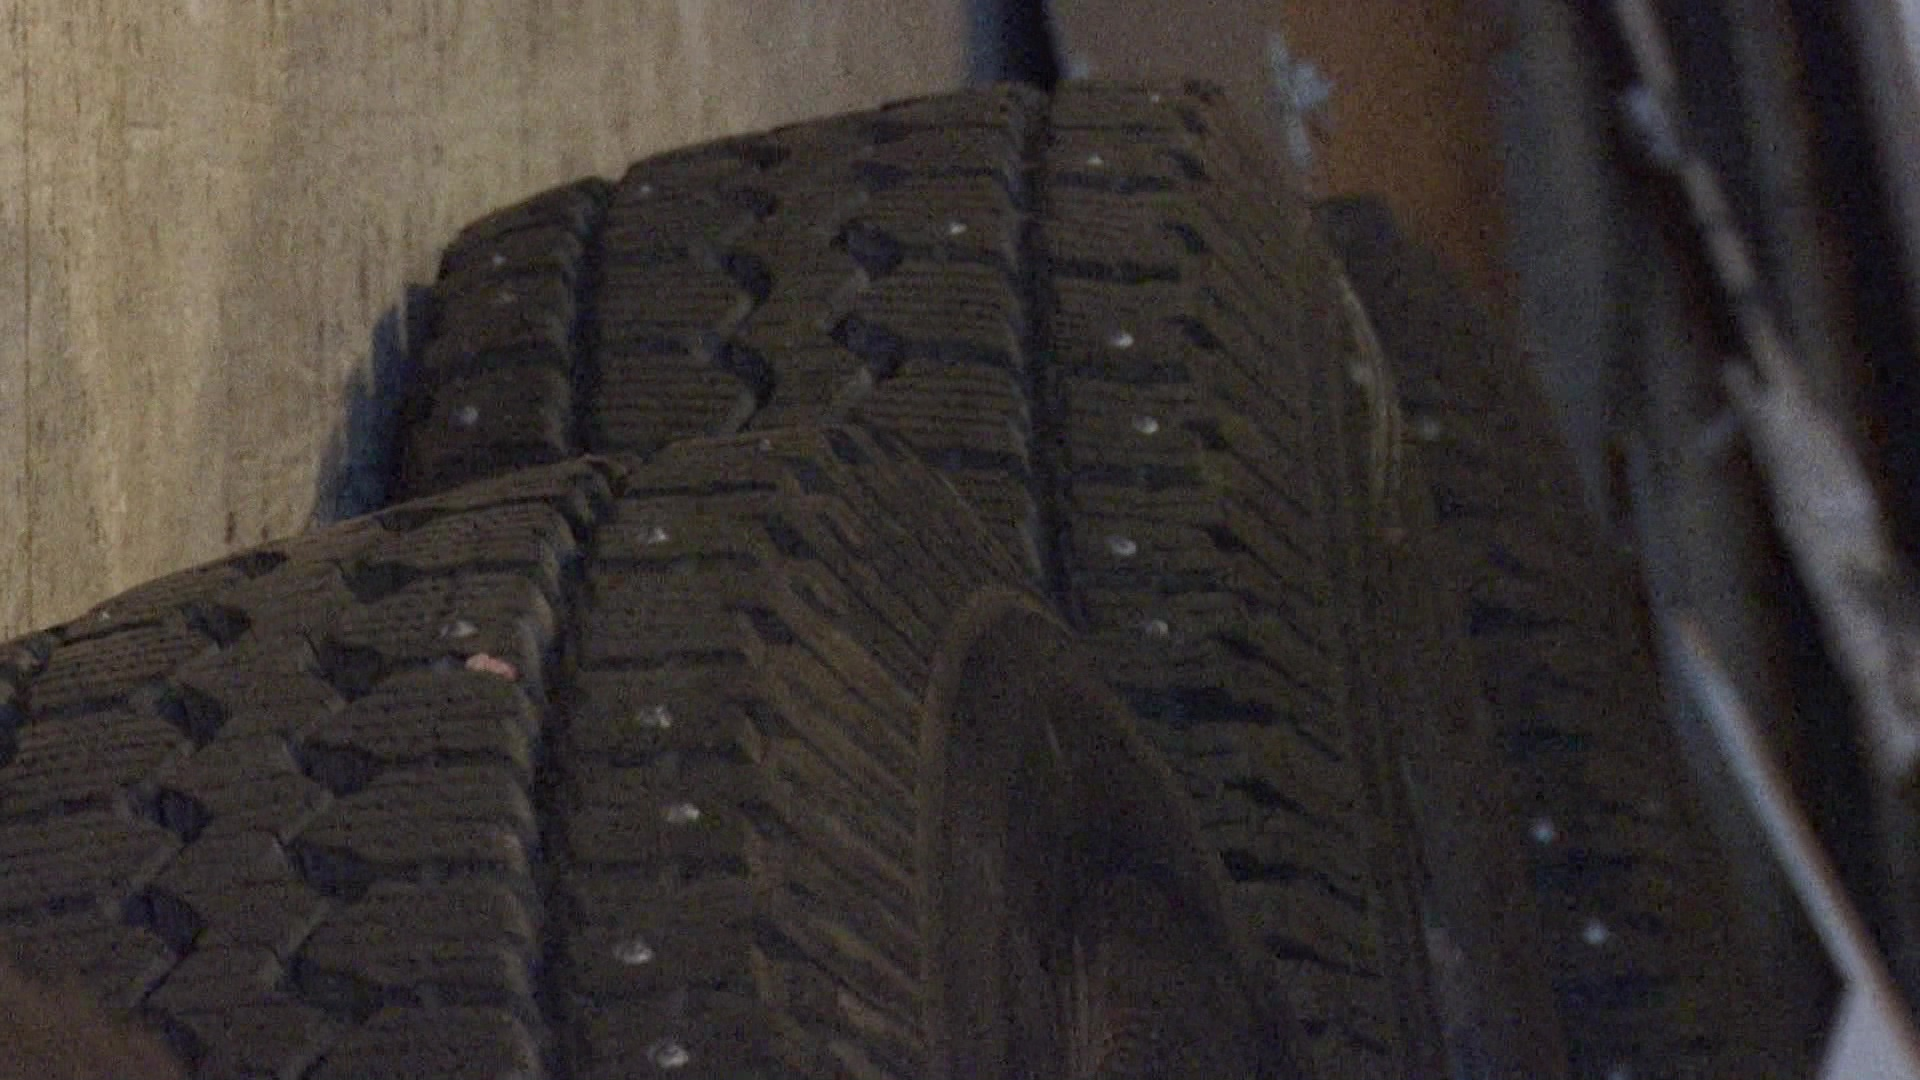 Vector district collects tires to help prevent disease carrying